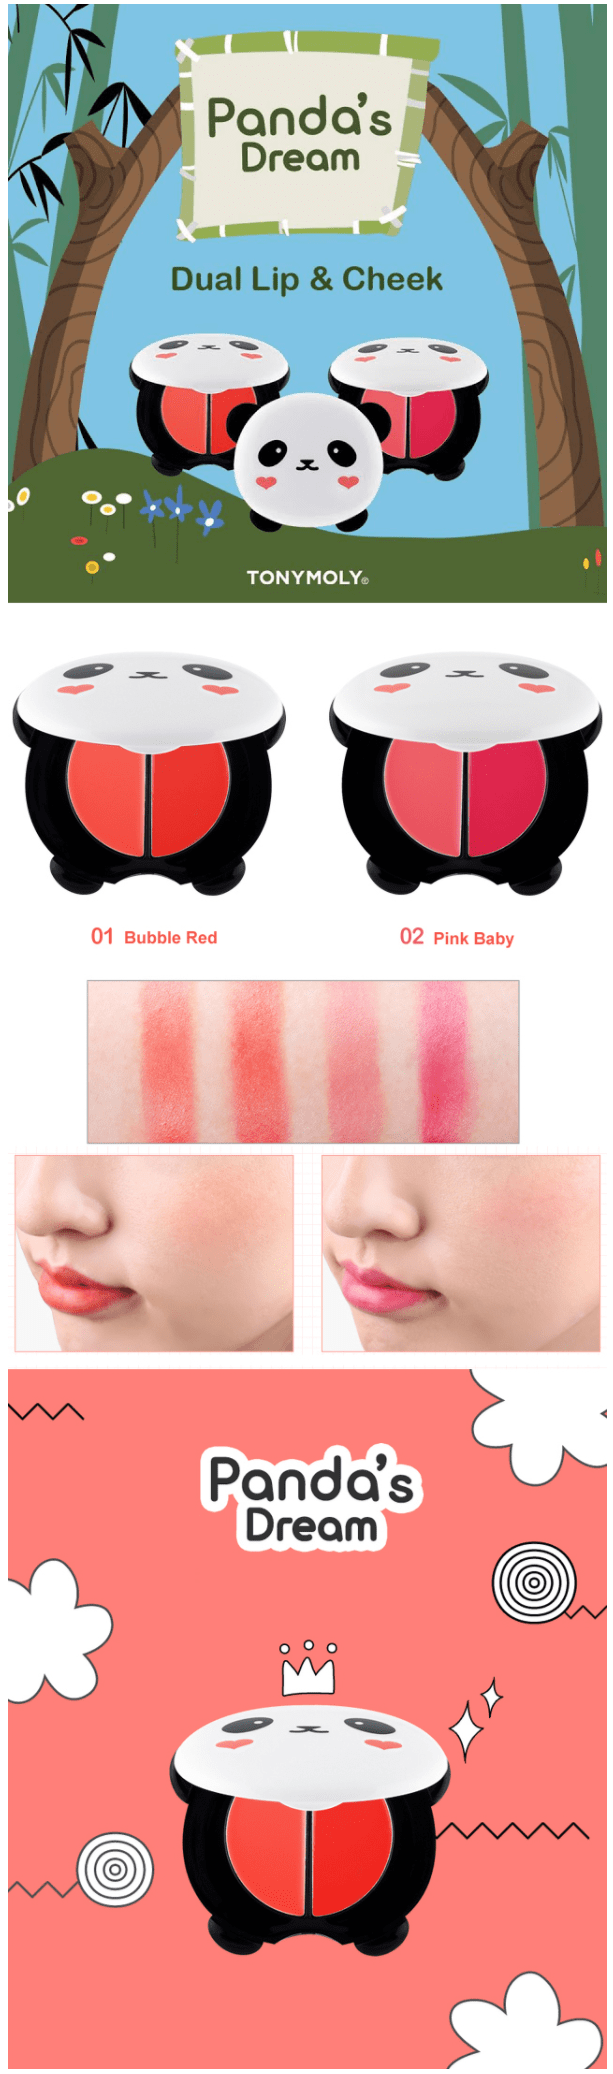 panda dual lip and cheek tonymoly-min